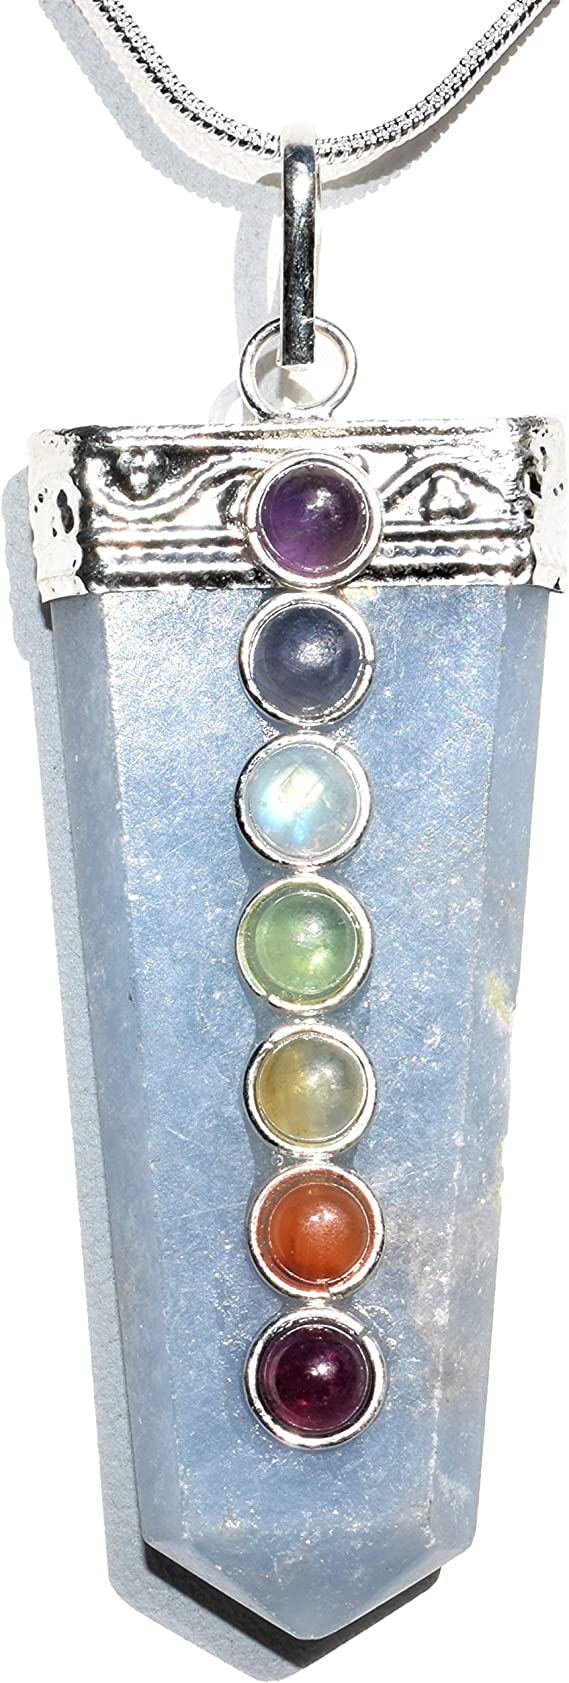 20 Sterling Silver Link Chain 7 Layer Chakra Necklace Wire Wrapped Multiple Crystal Pendant Flat Crystal Point SCN-3 Metaphysical